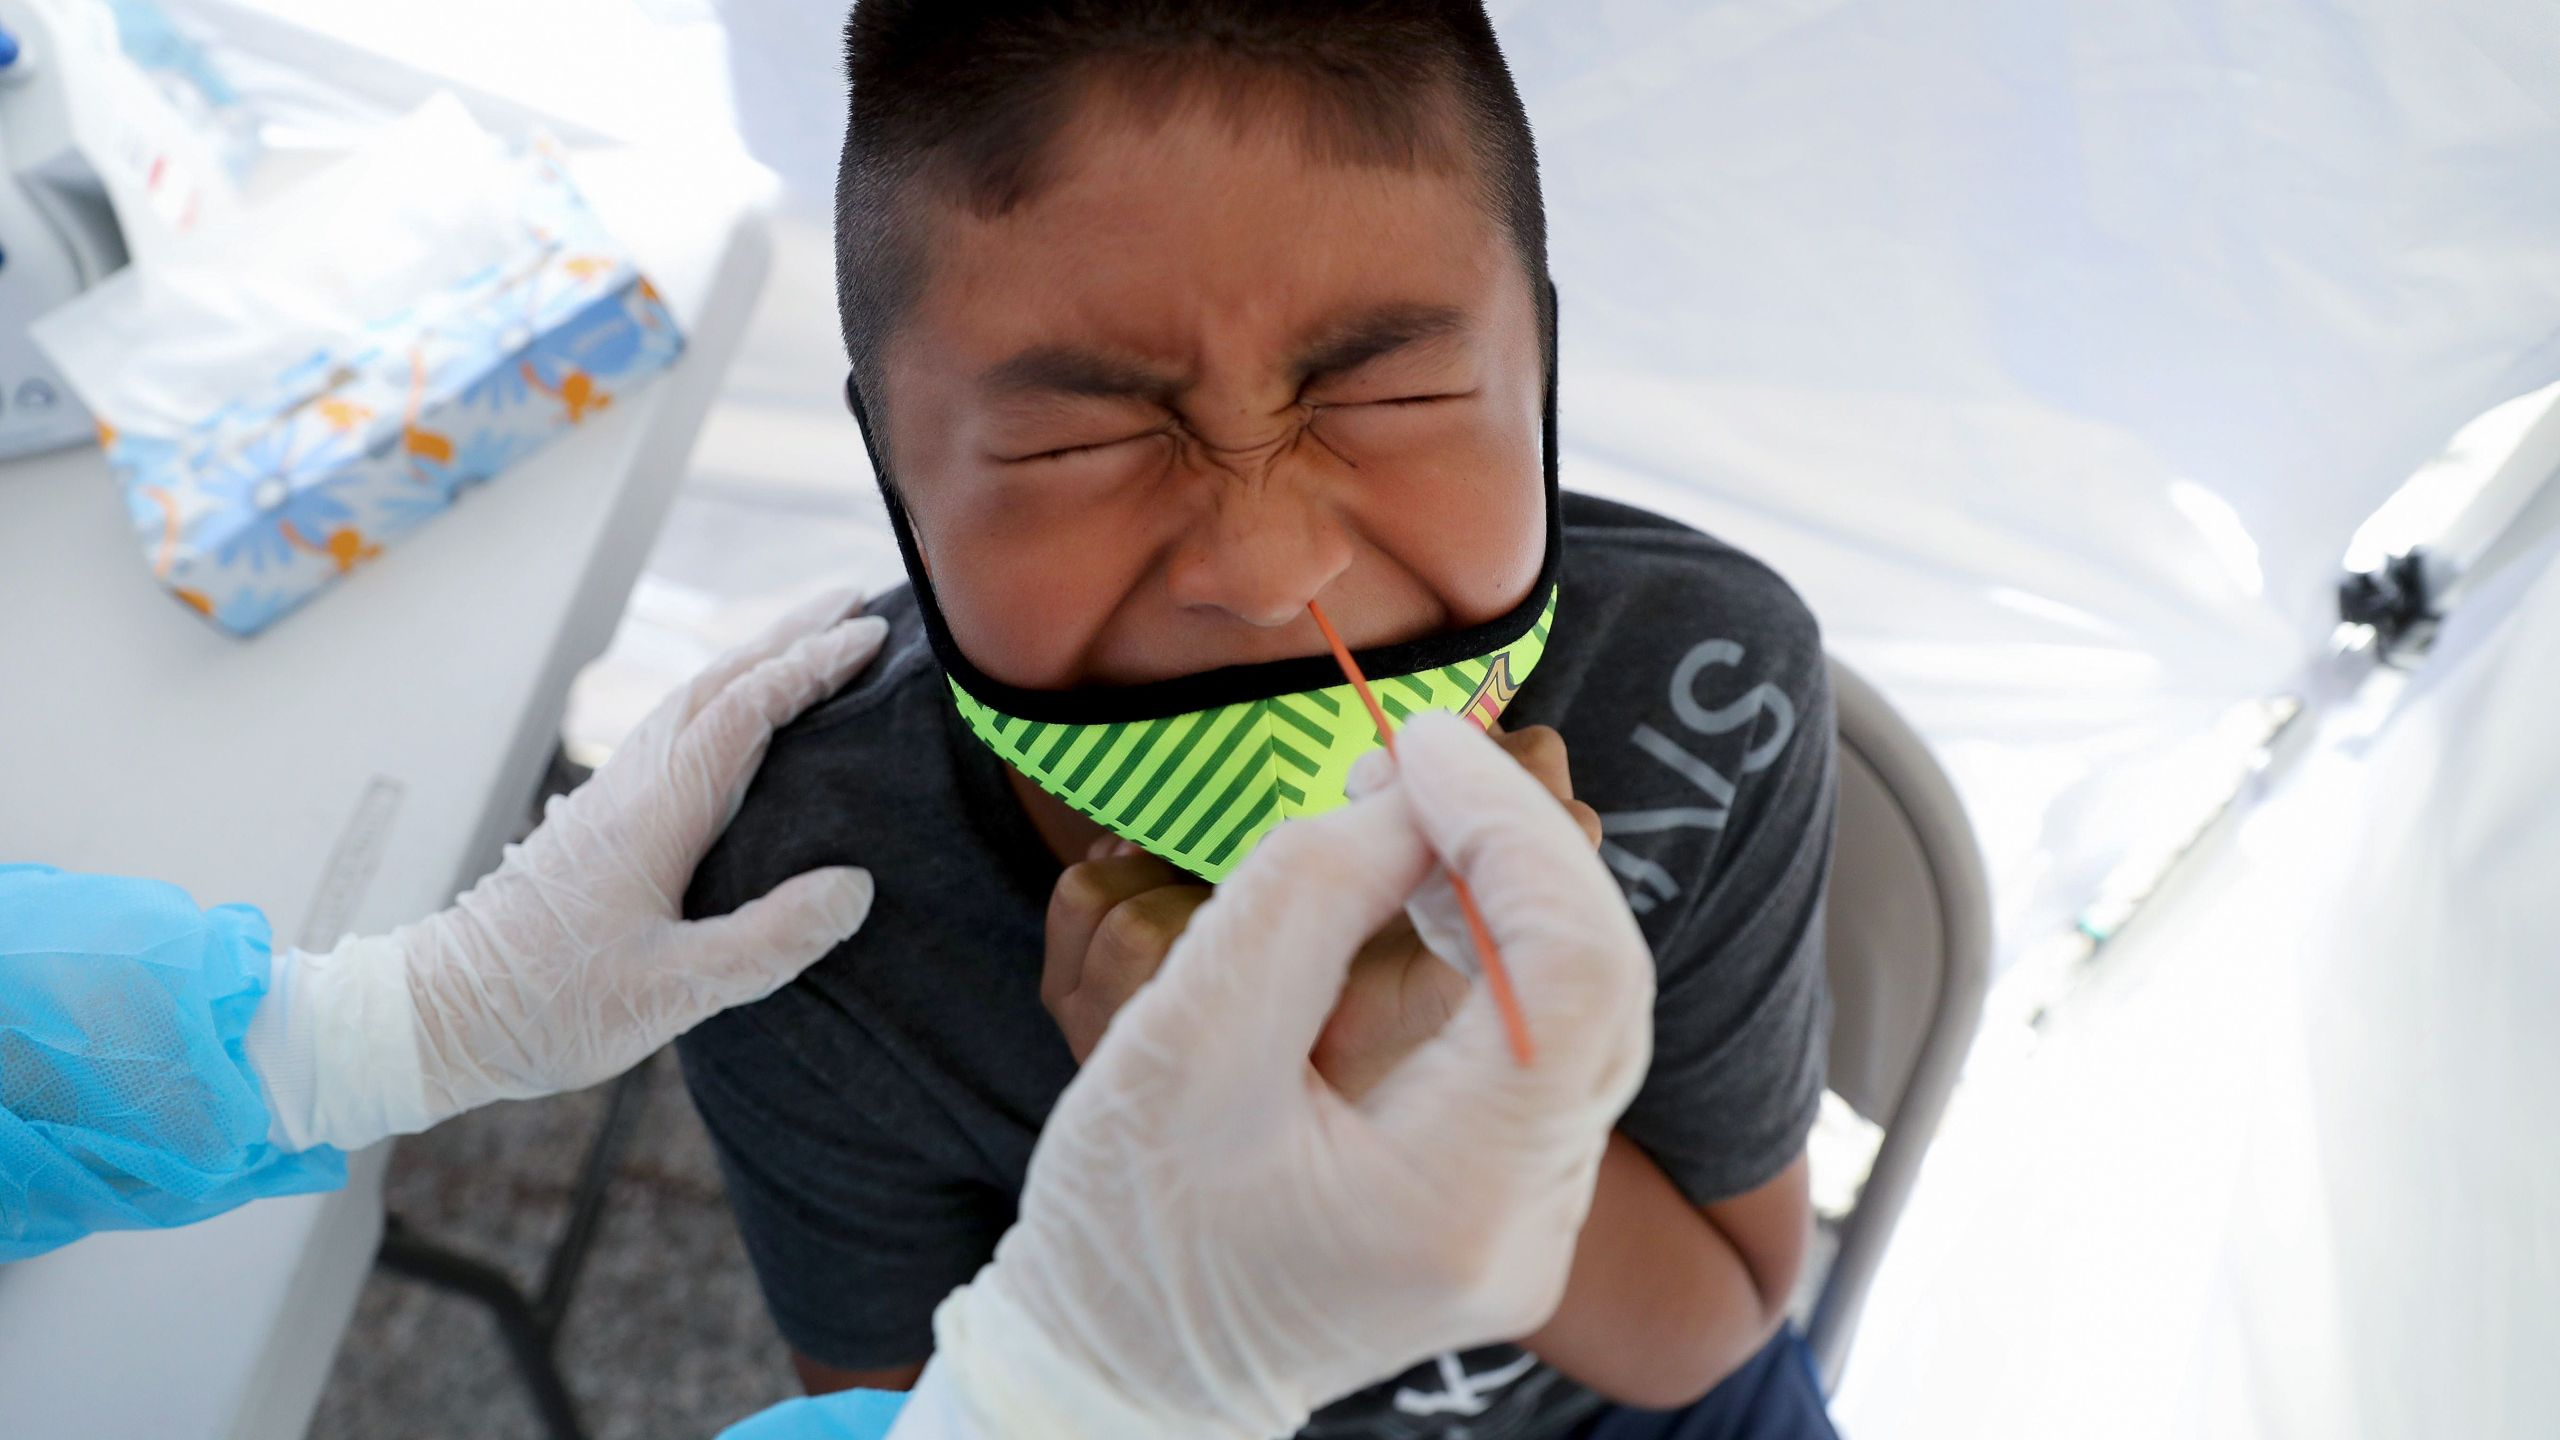 A boy receives a free coronavirus test at a St. John's Well Child & Family Center mobile clinic set up outside Walker Temple AME Church in South Los Angeles on July 15, 2020. (Mario Tama/Getty Images)